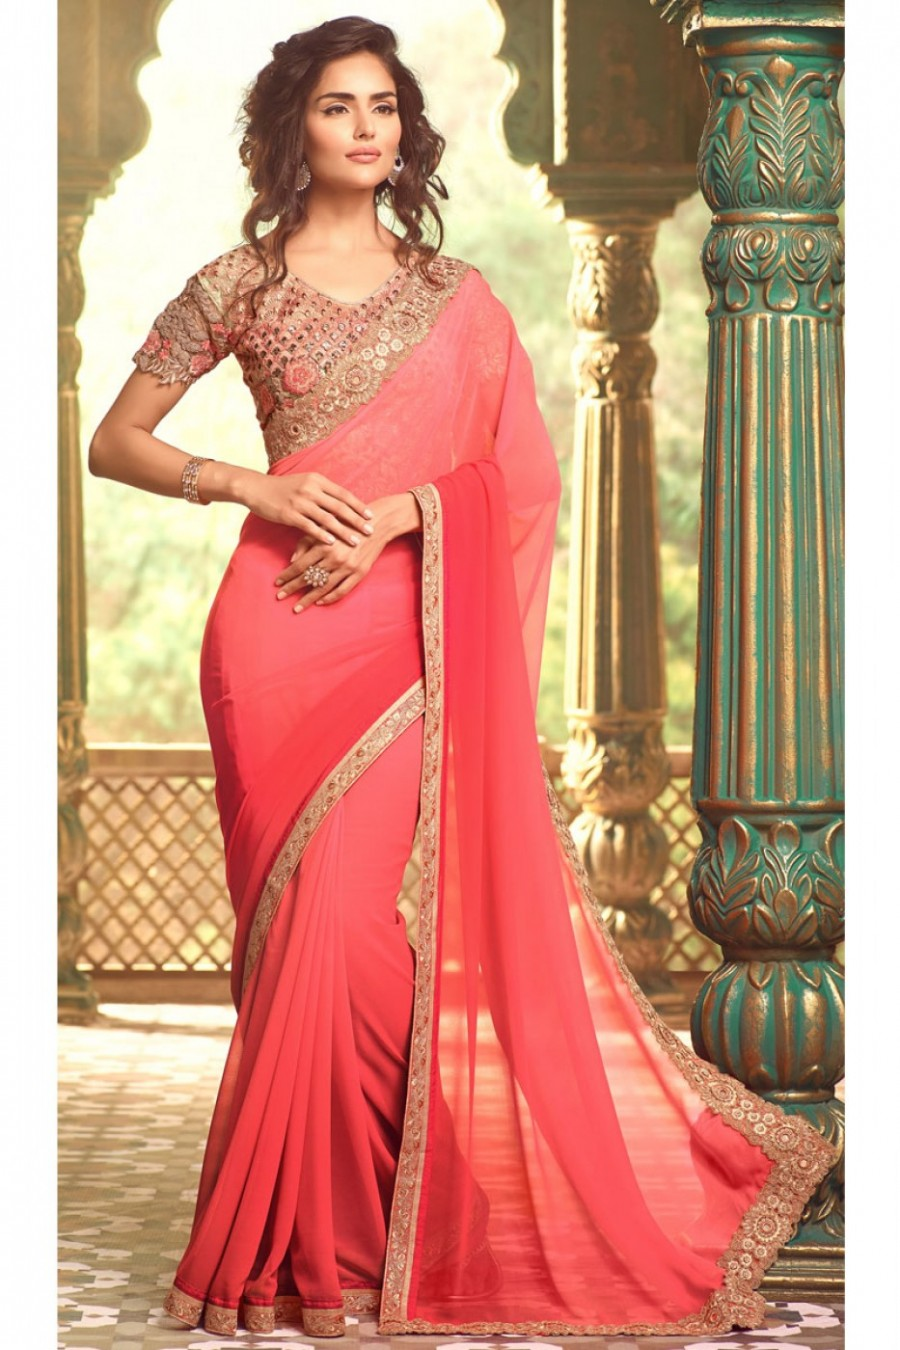 04b22d251c Buy Cut Work Border Georgette Designer Partywear Saree in Light Pink and  Rose Color with Fancy